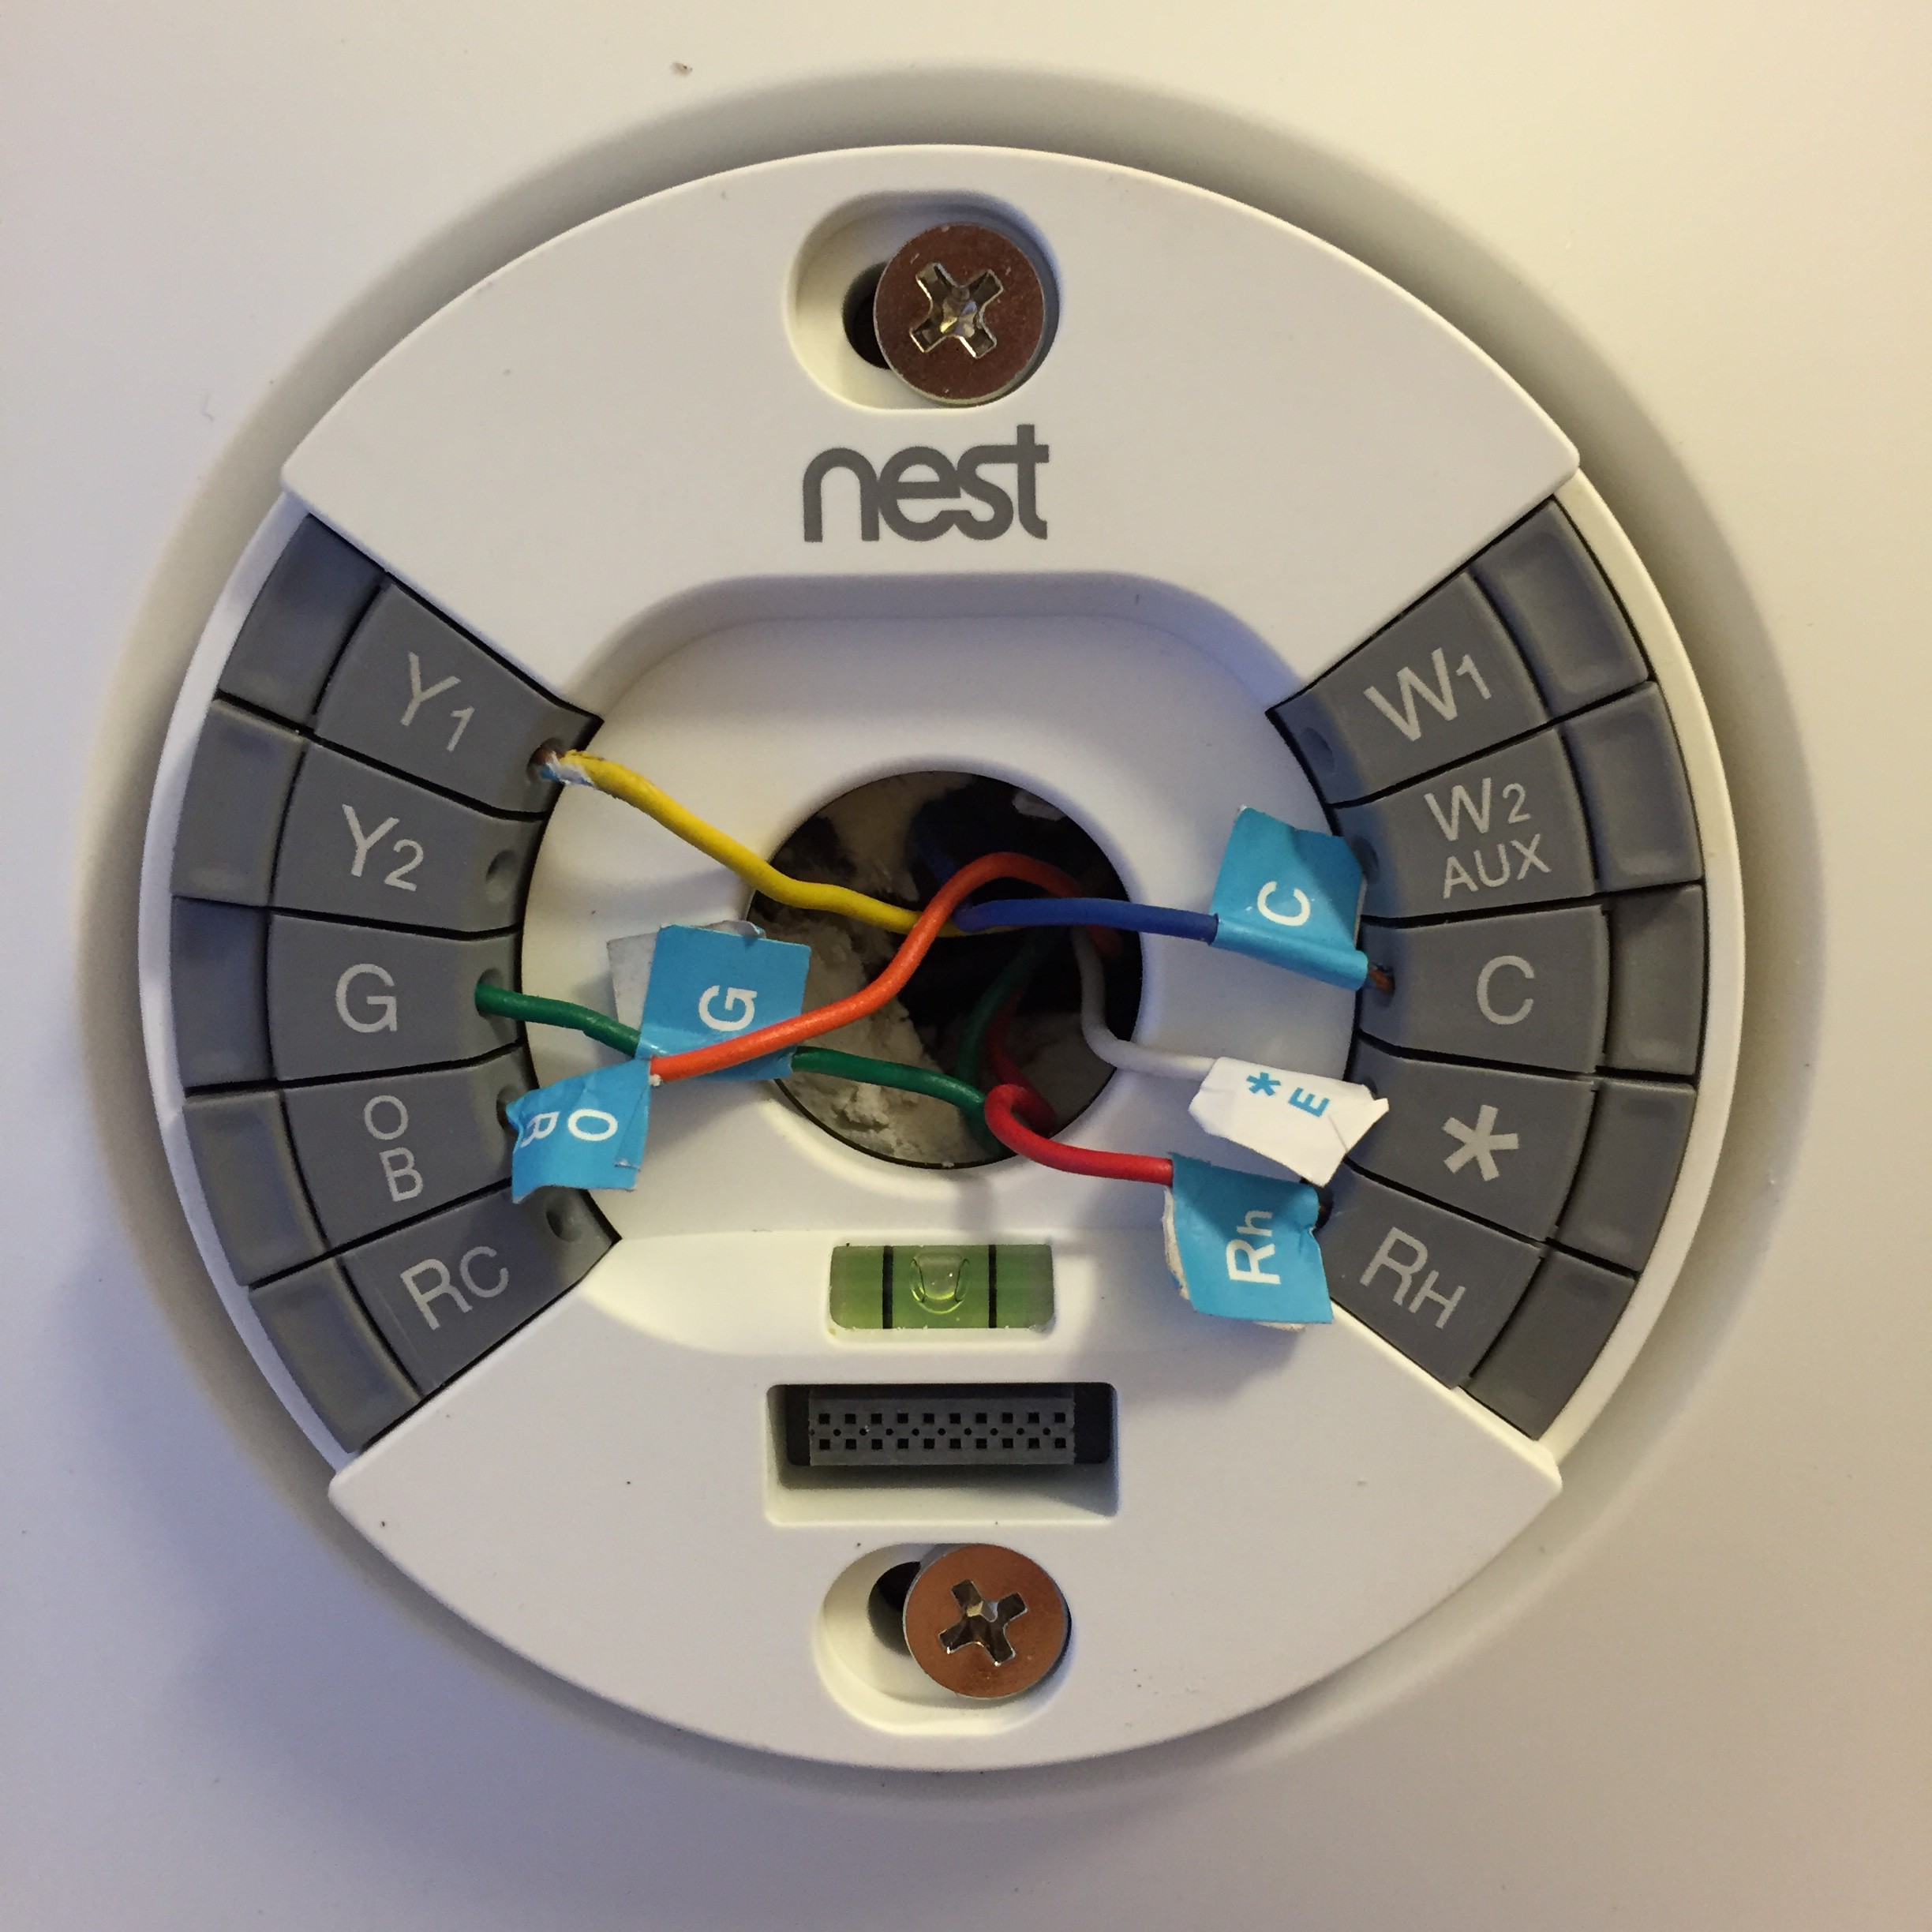 NEST Back Plate e1433878189266 the self learning nest thermostat comes to the sauser home! nest thermostat heat pump wiring diagram at creativeand.co